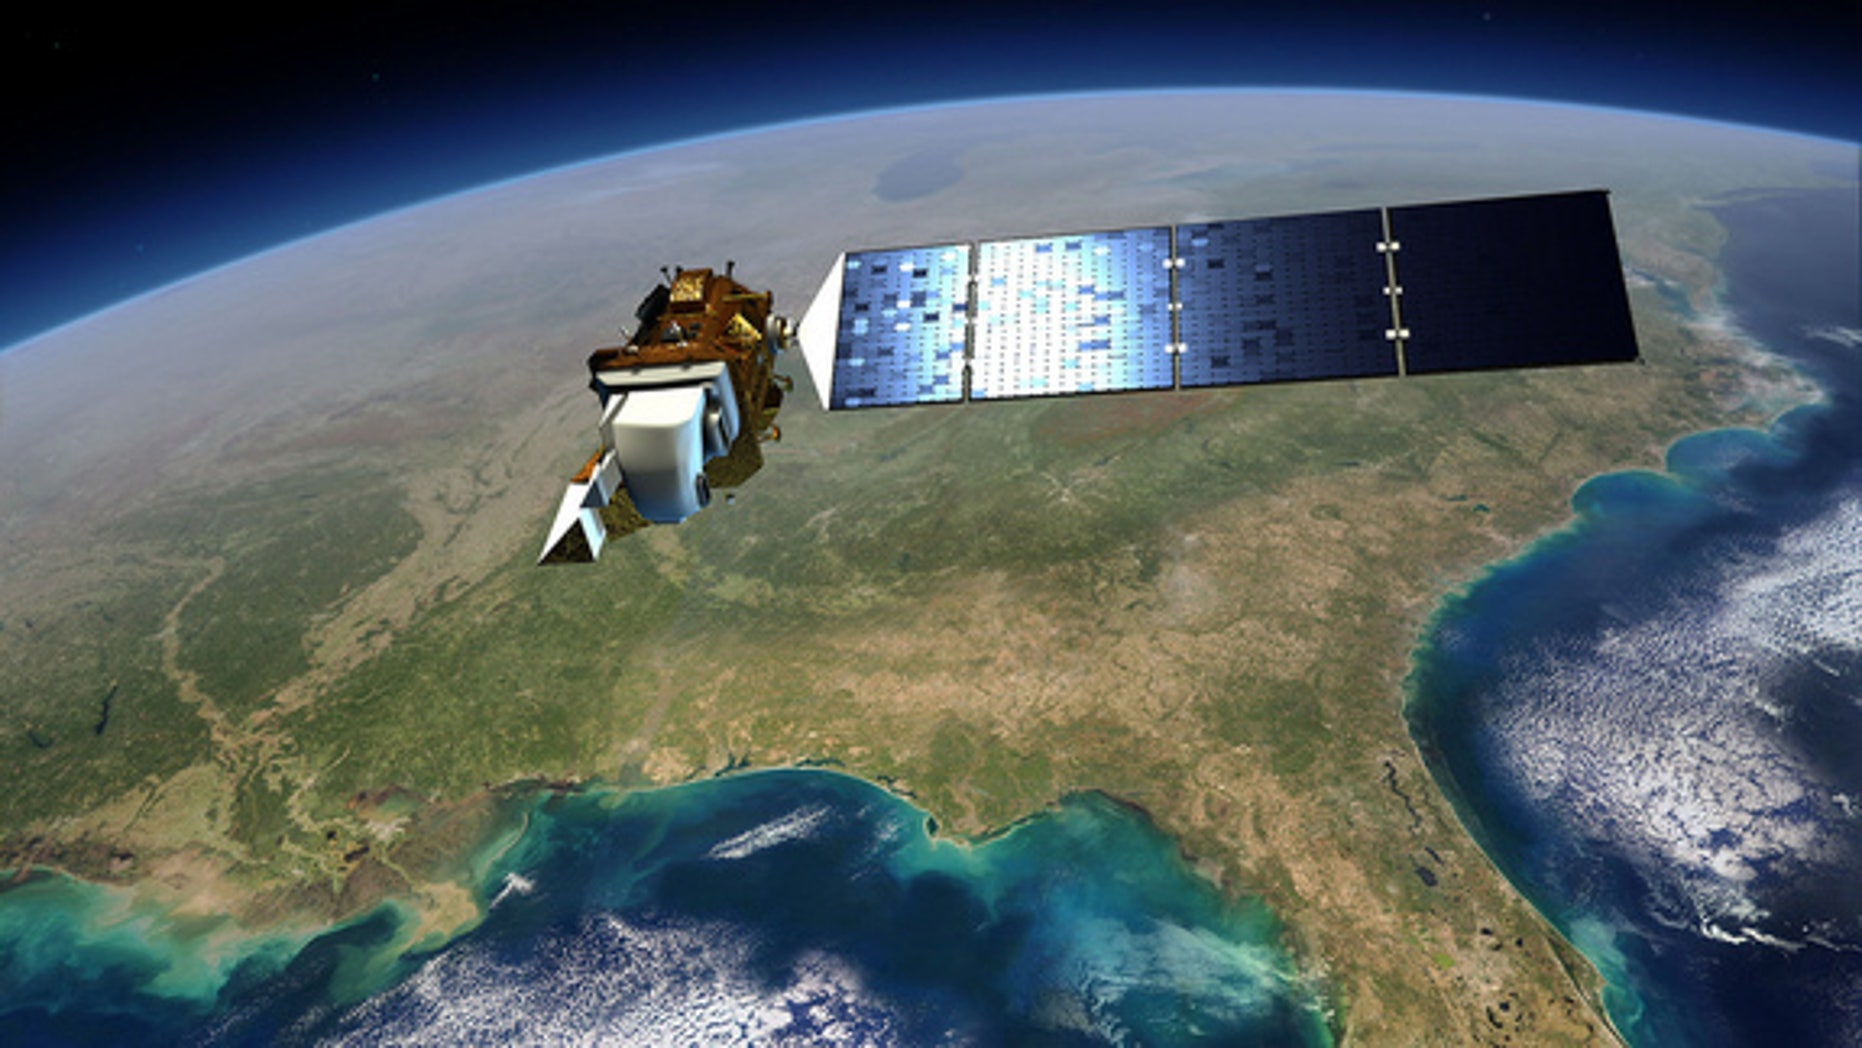 An artist's view of the Landsat Data Continuity Mission spacecraft in orbit above the Gulf Coast of the U.S.